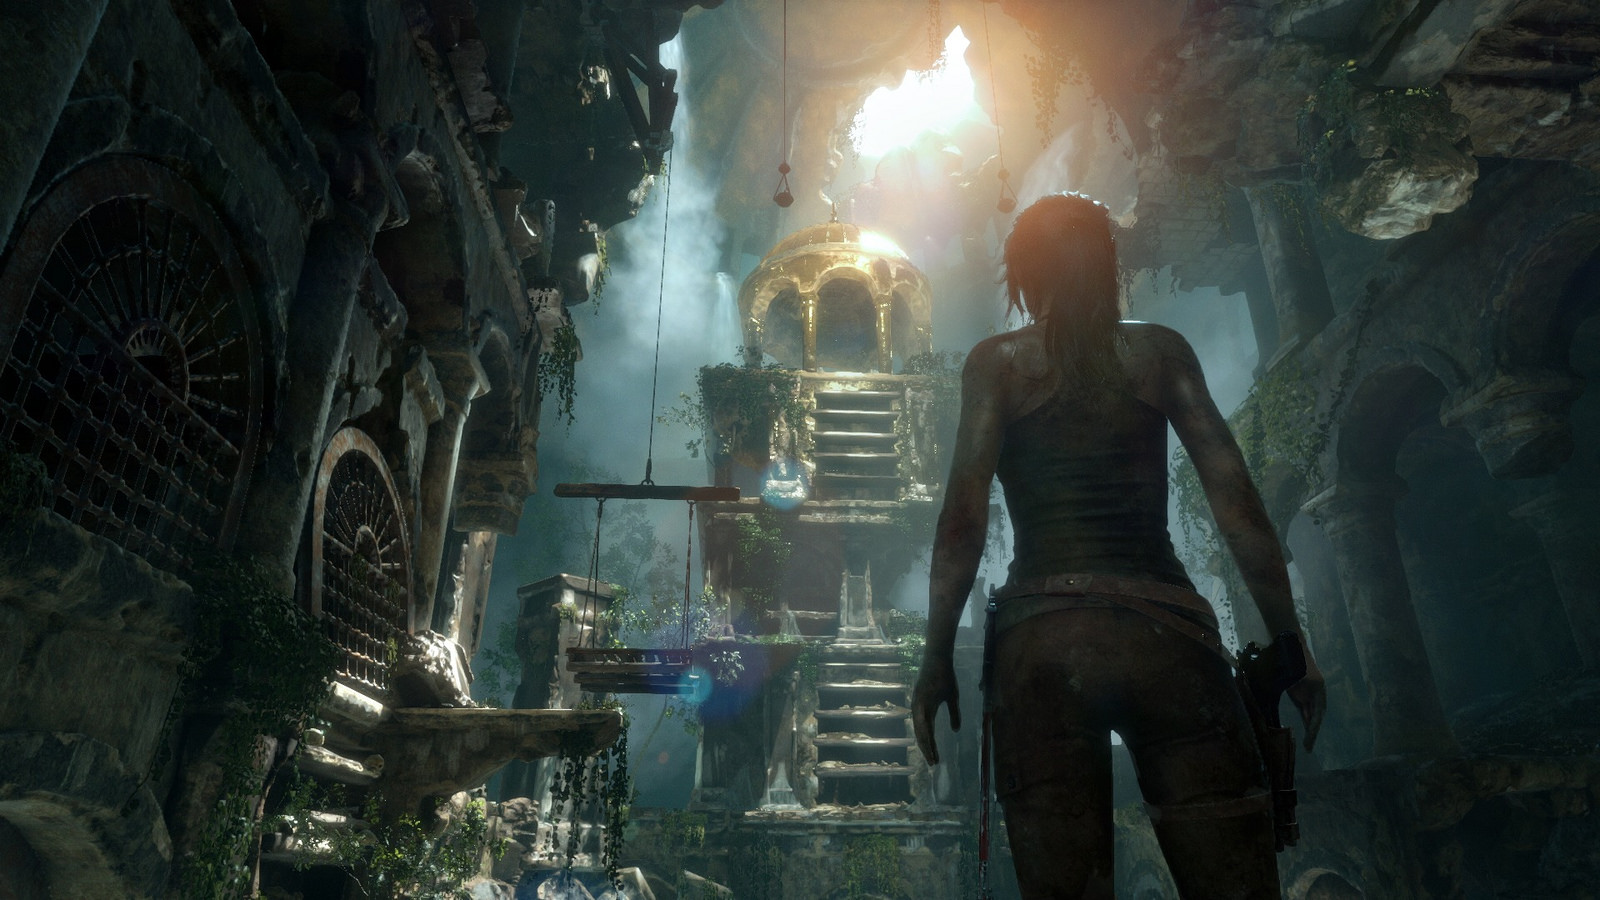 Rise Of The Tomb Raider S Vr Content Hits Oculus Rift And Htc Vive